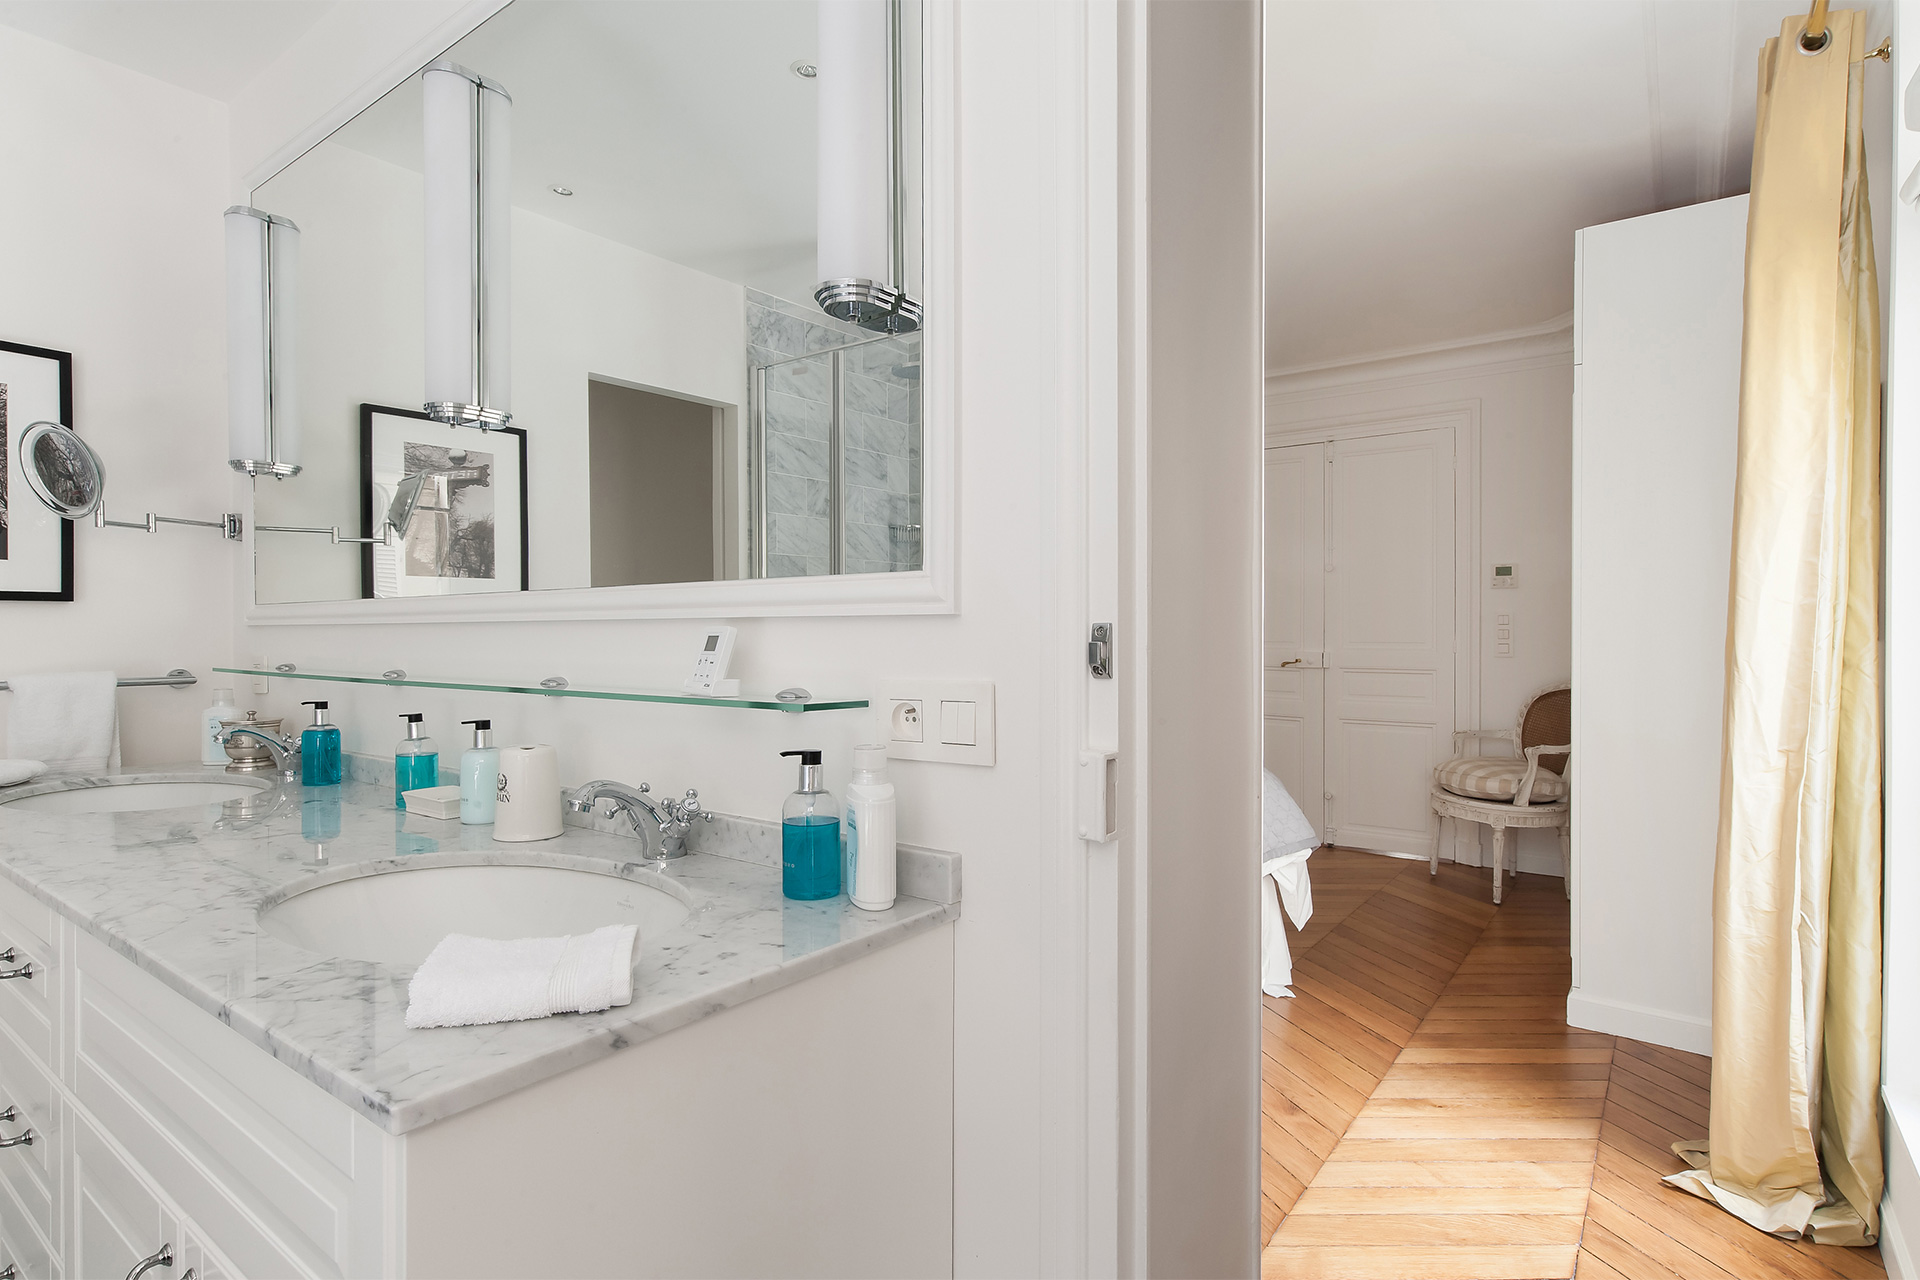 En suite bathroom of the Montagny vacation rental offered by Paris Perfect